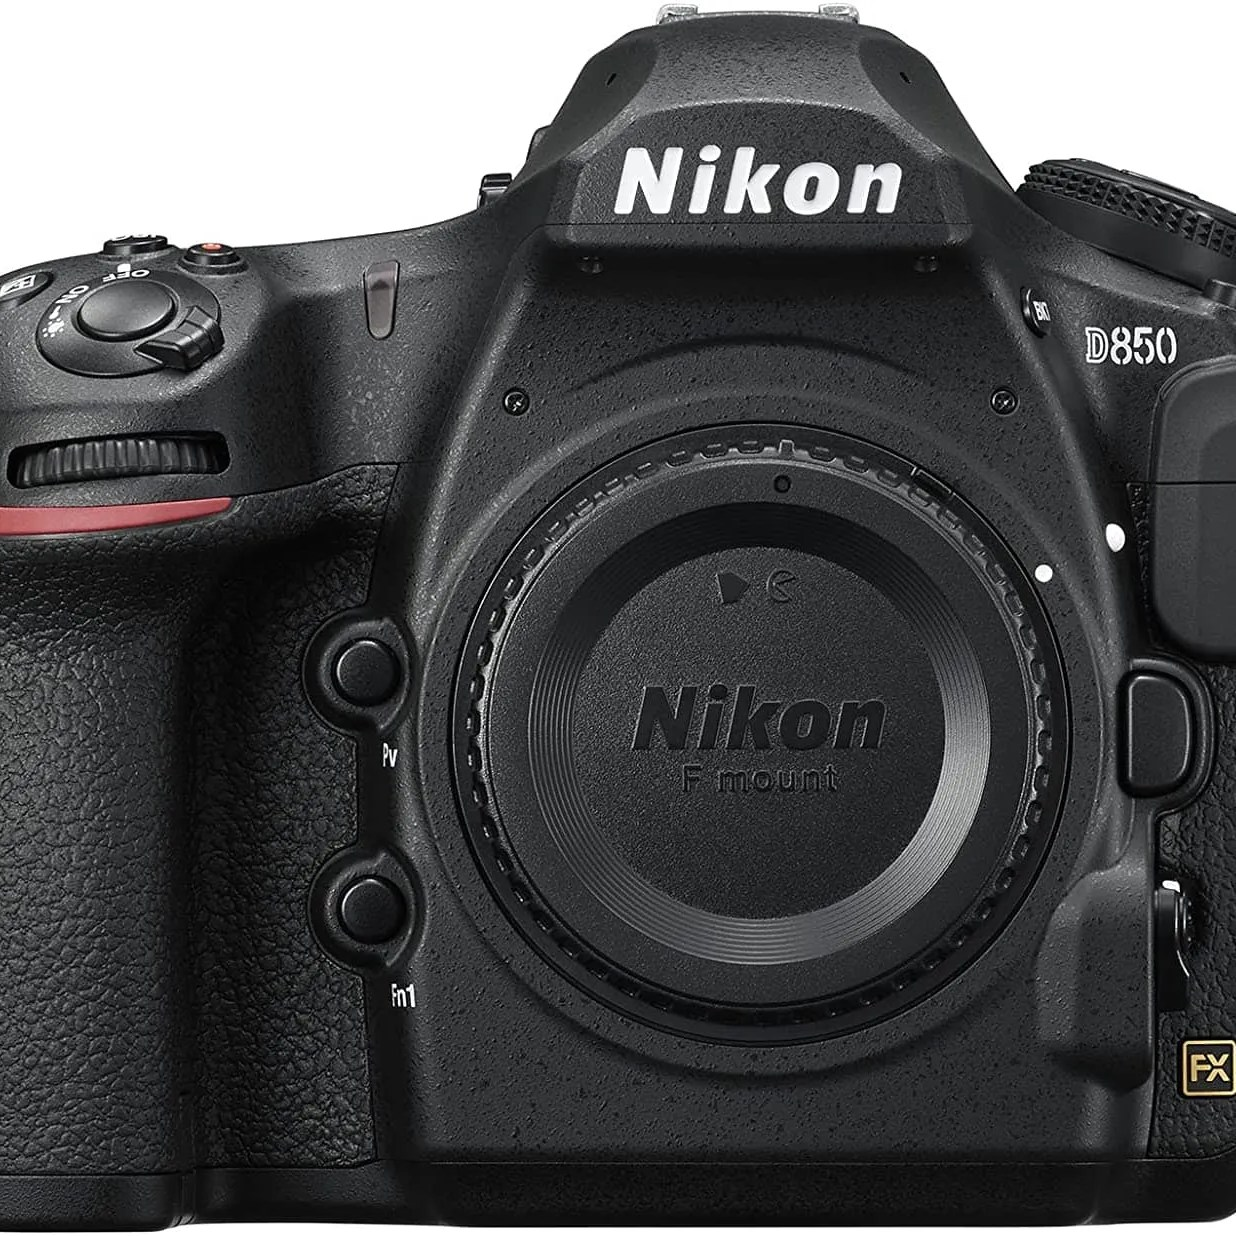 Photo of a Nikon D850, the main camera in our photography gear bag.